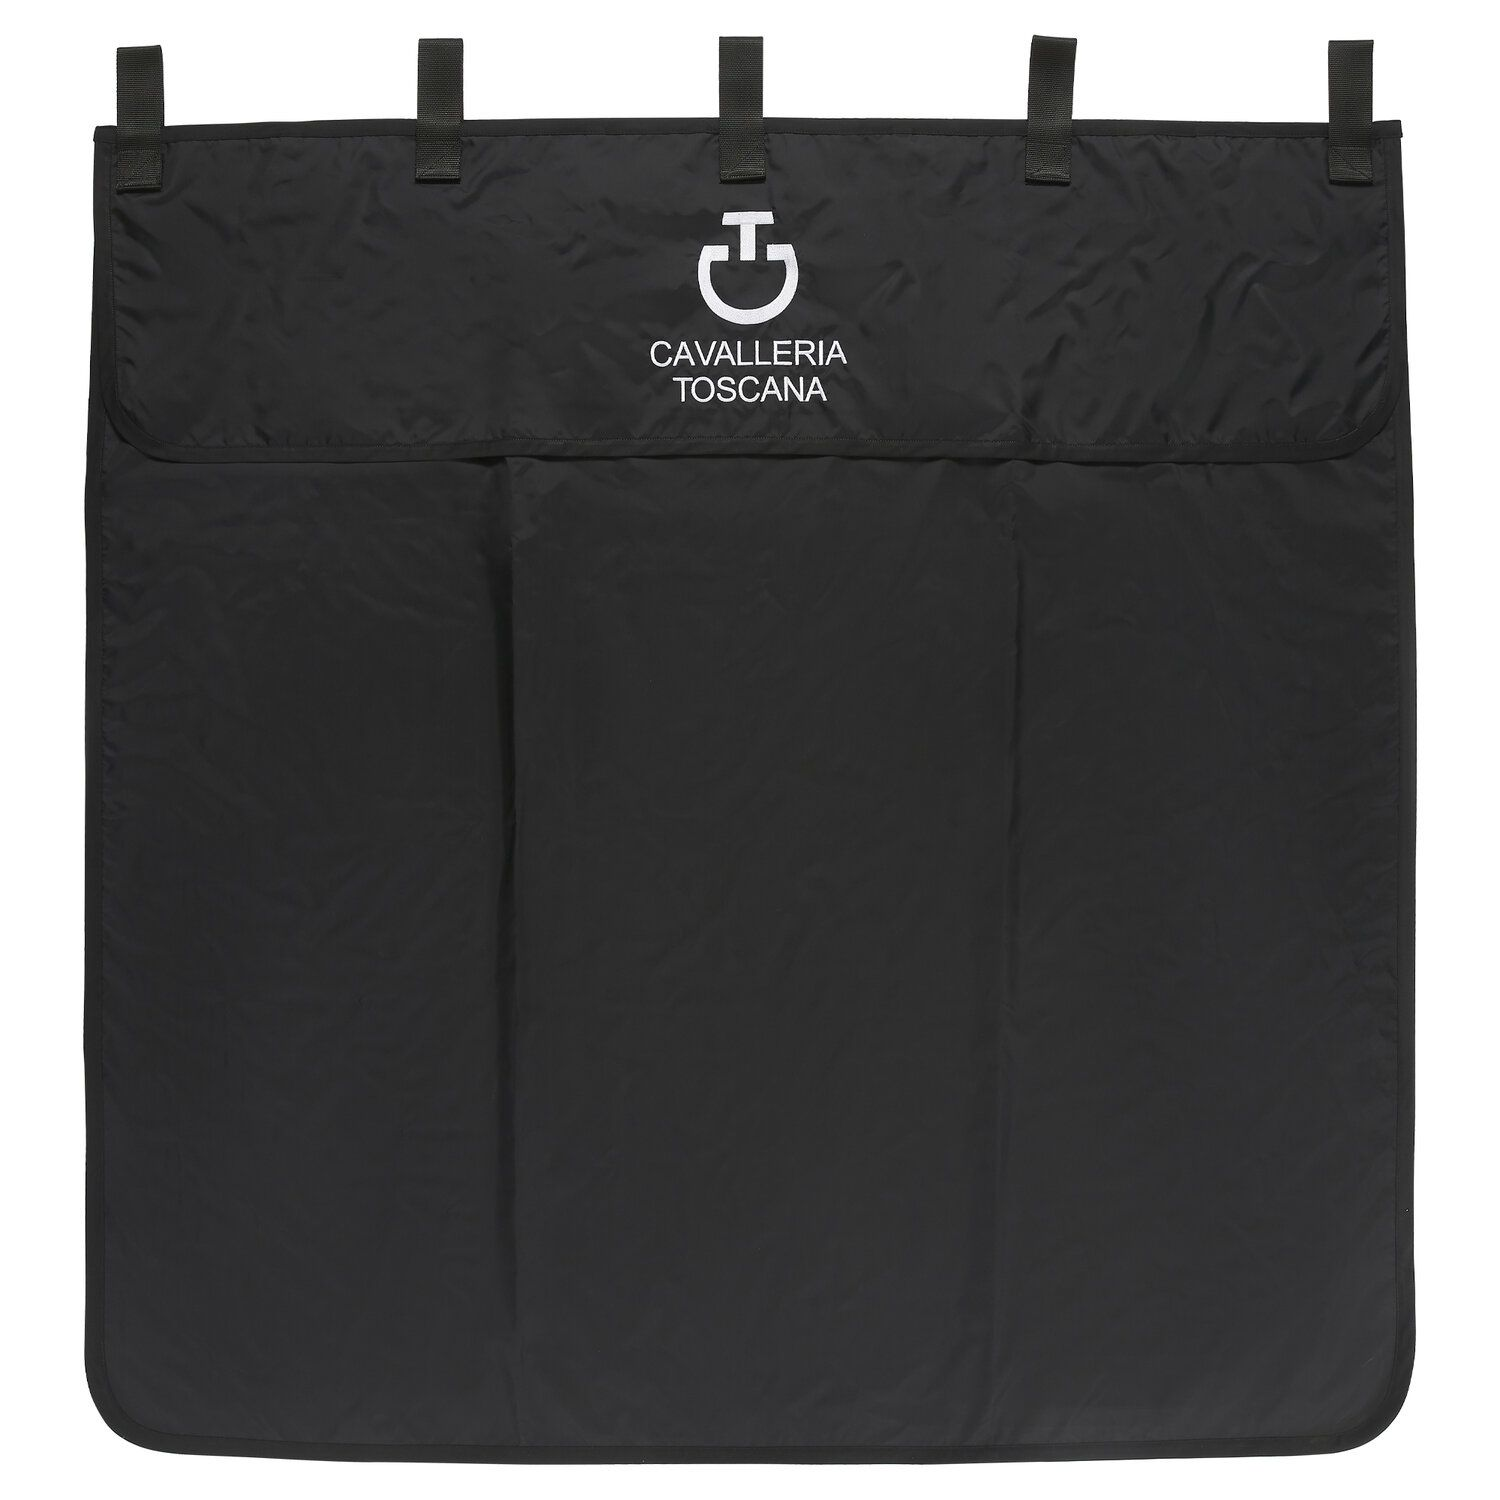 Water resistant stable curtain